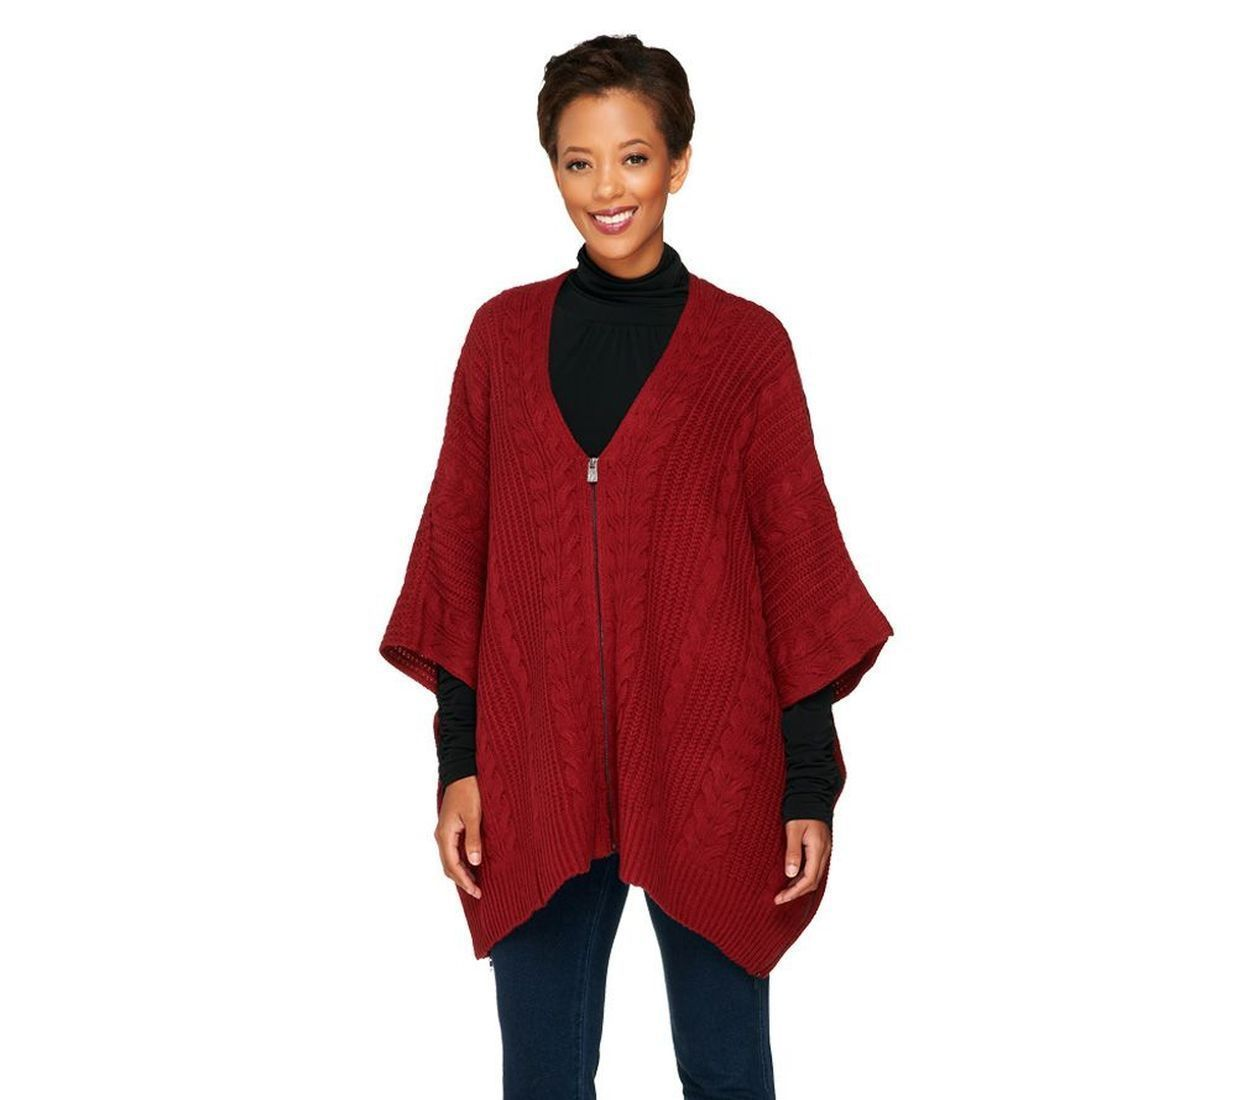 72.25$  Watch now - http://vihrp.justgood.pw/vig/item.php?t=ftucs583294 - Lisa Rinna Collection Zipper Front Sweater Poncho Burgundy XL/1X NEW A257747 72.25$